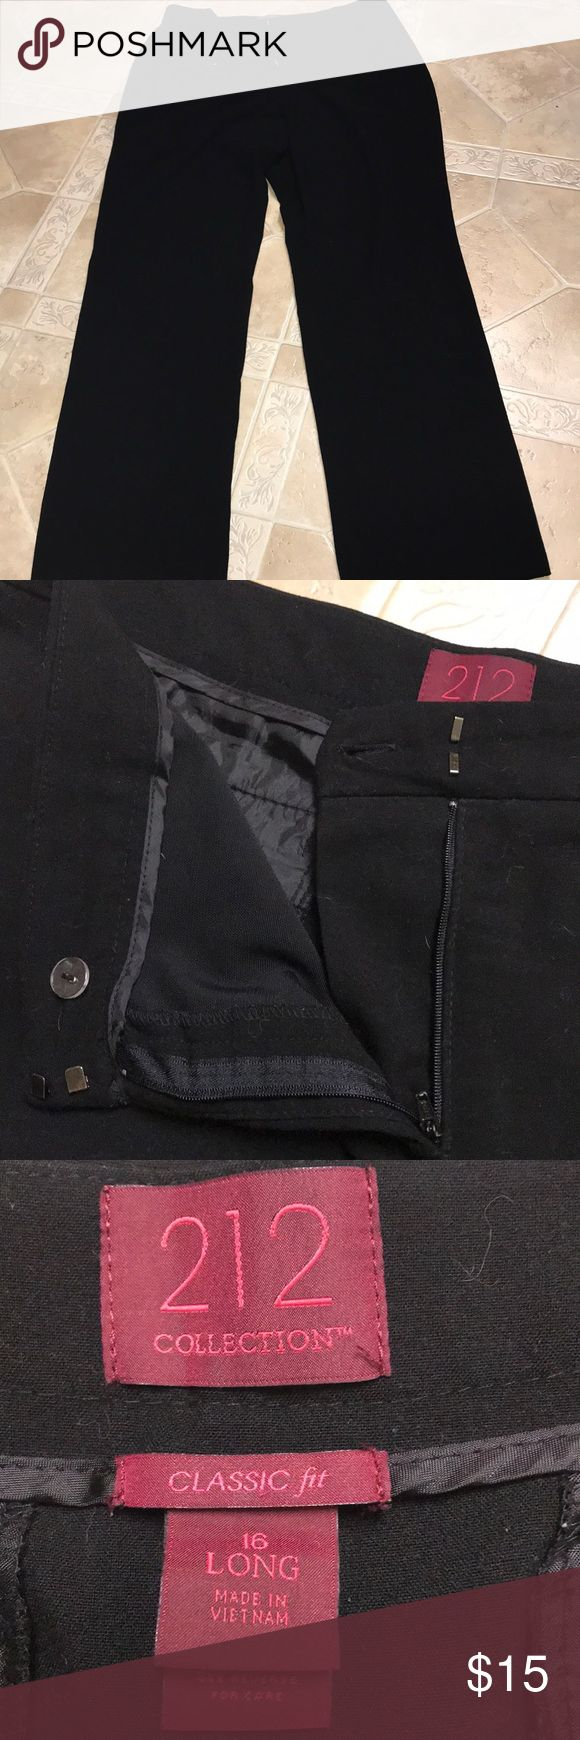 Women's black dress pants Women's classic fit black trousers. These pants are a long fit for tall women. Good condition and only worn a few times.   *Bundle and save 15%+ and only paying shipping once!!!  *Everything comes from a clean and smoke free household.  *Household is pet friendly 212 Collection Pants Trousers